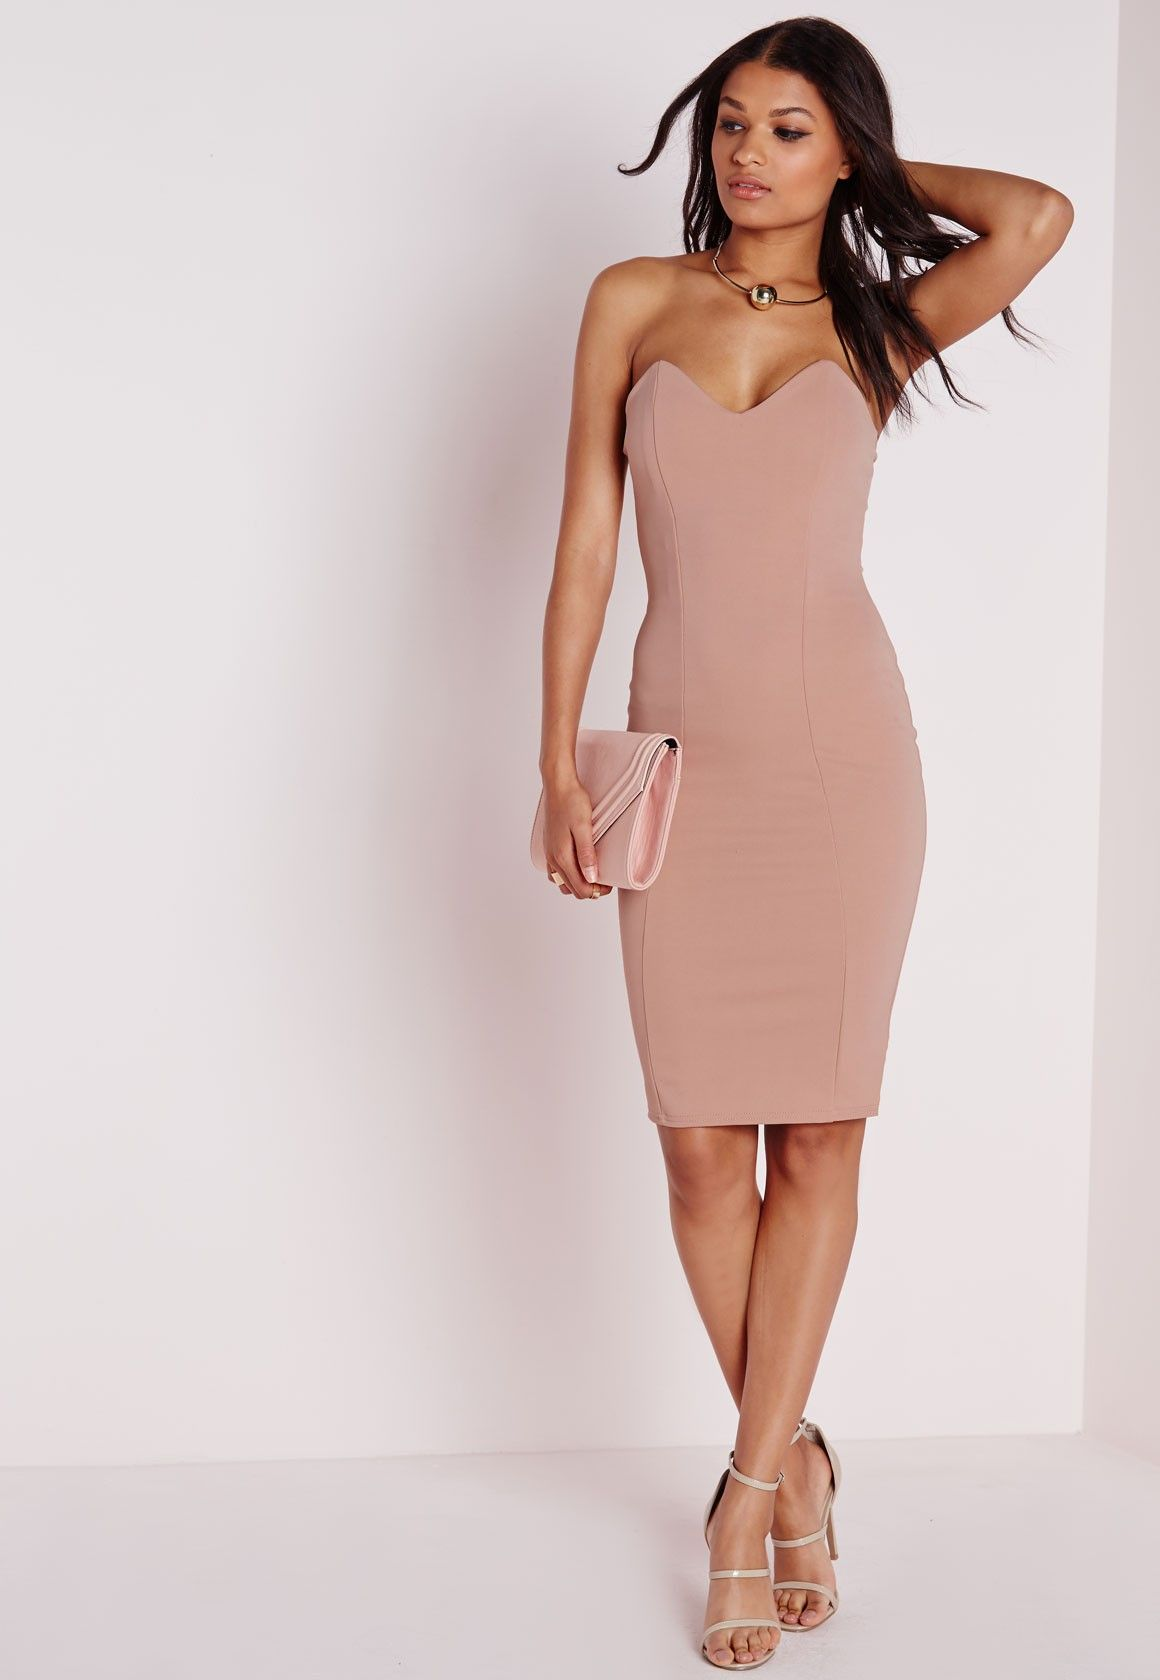 Missguided Bandeau Bodycon Midi Dress Taupe Midi Dress Bodycon Bodycon Dress Parties Dresses [ 1680 x 1160 Pixel ]